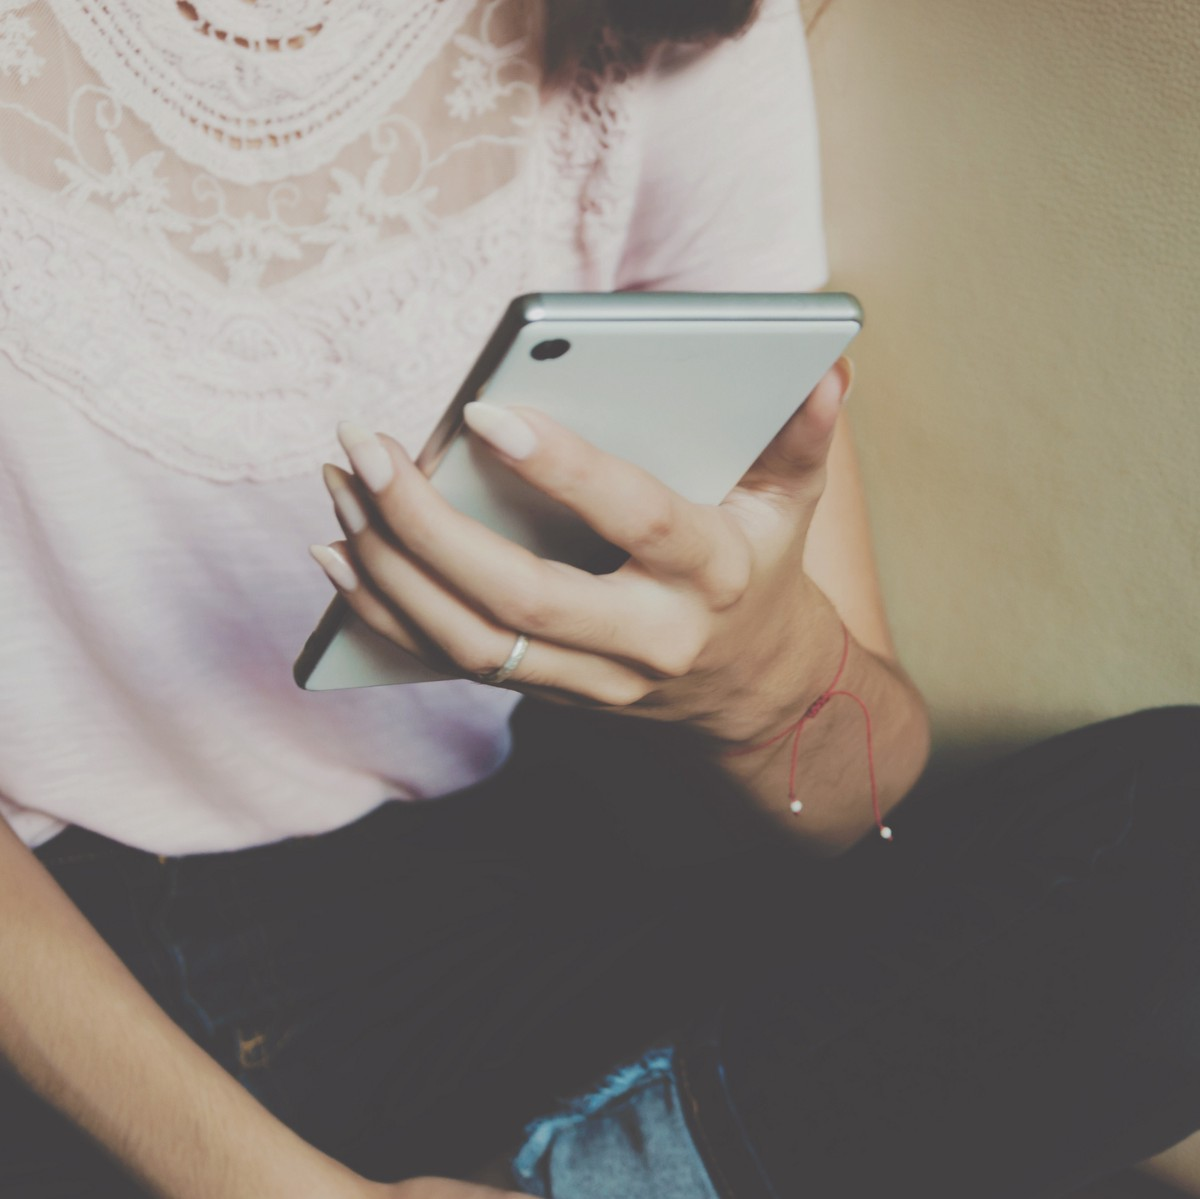 Why You Should Stop Asking for Parenting Advice on Facebook